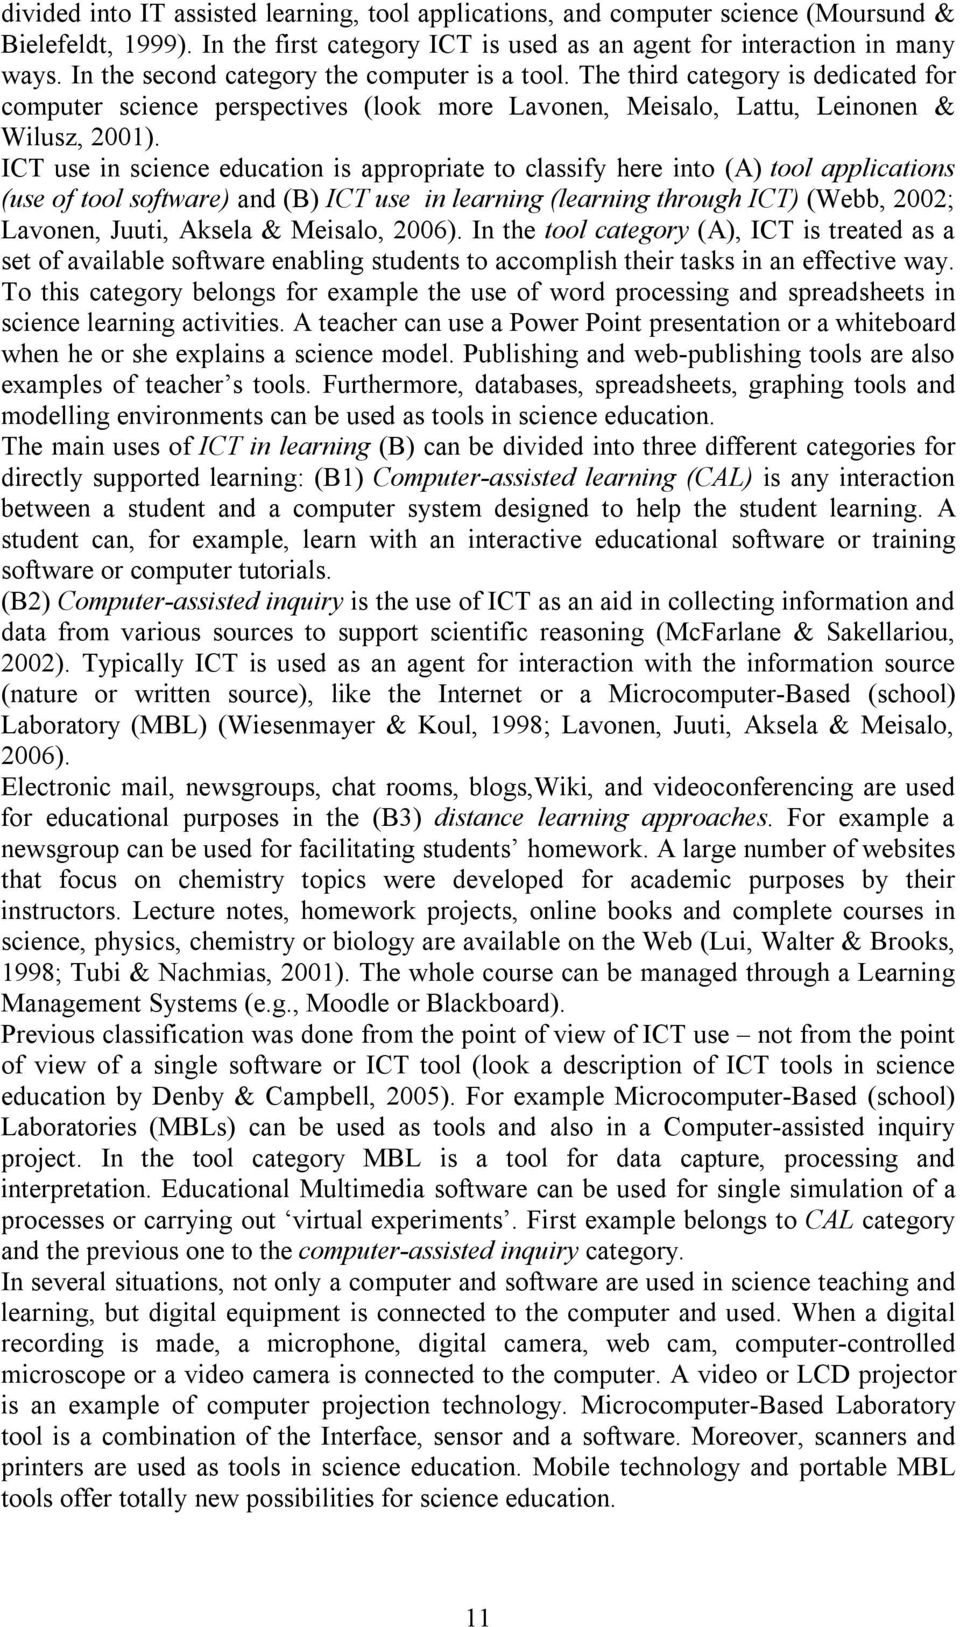 ICT use in science education is appropriate to classify here into (A) tool applications (use of tool software) and (B) ICT use in learning (learning through ICT) (Webb, 2002; Lavonen, Juuti, Aksela &